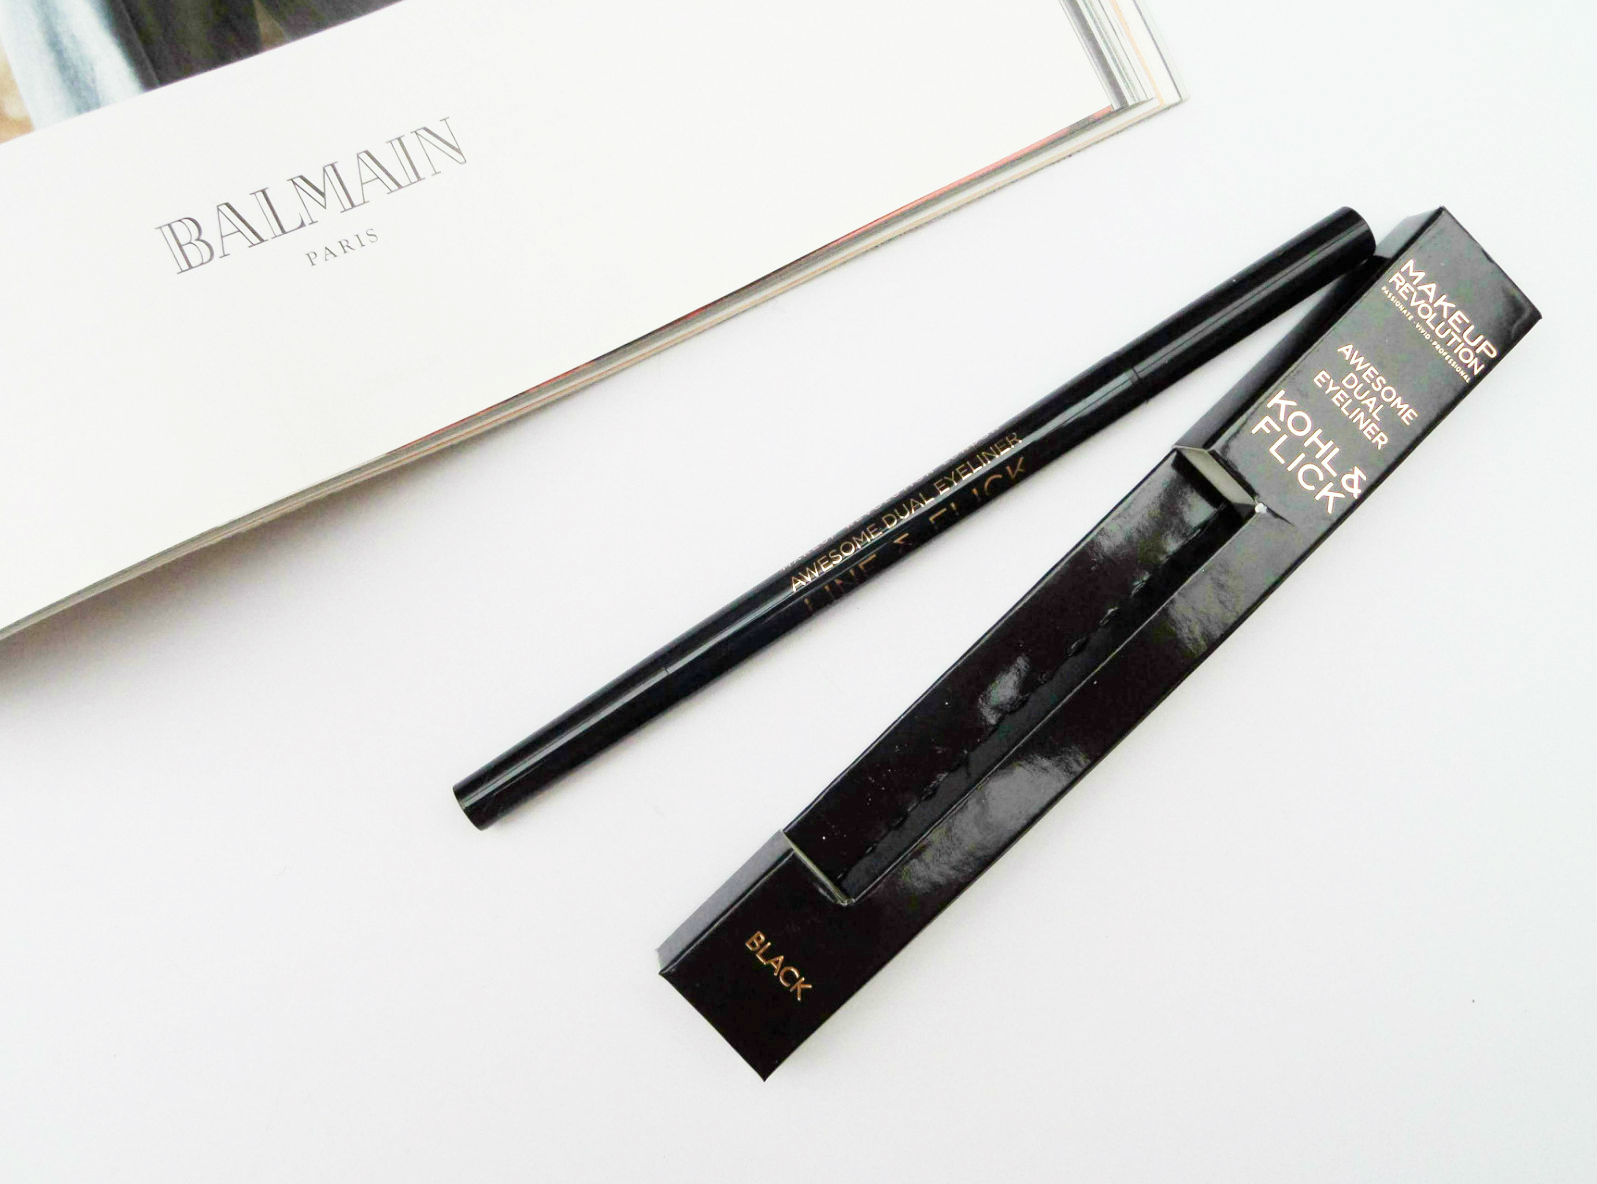 The Makeup Revolution Kohl & Flick Eyeliner Review